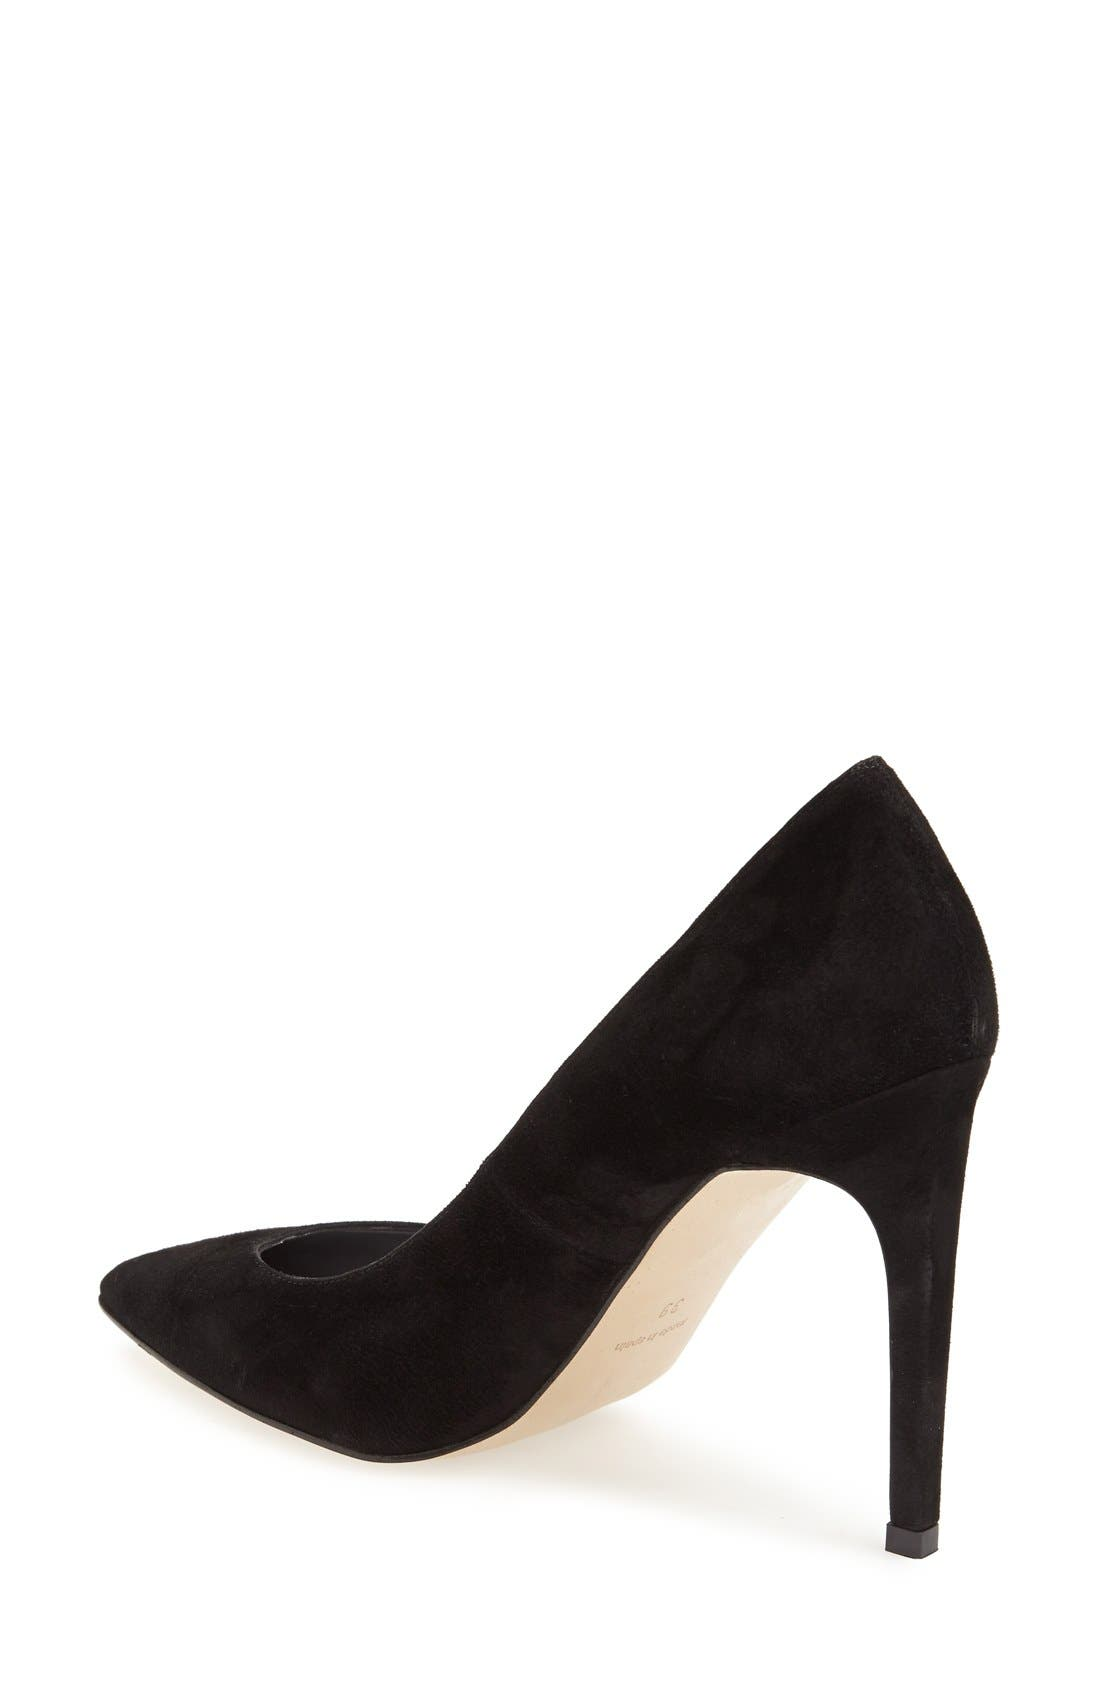 'Glory' Pointy Toe Suede Pump,                             Alternate thumbnail 2, color,                             001